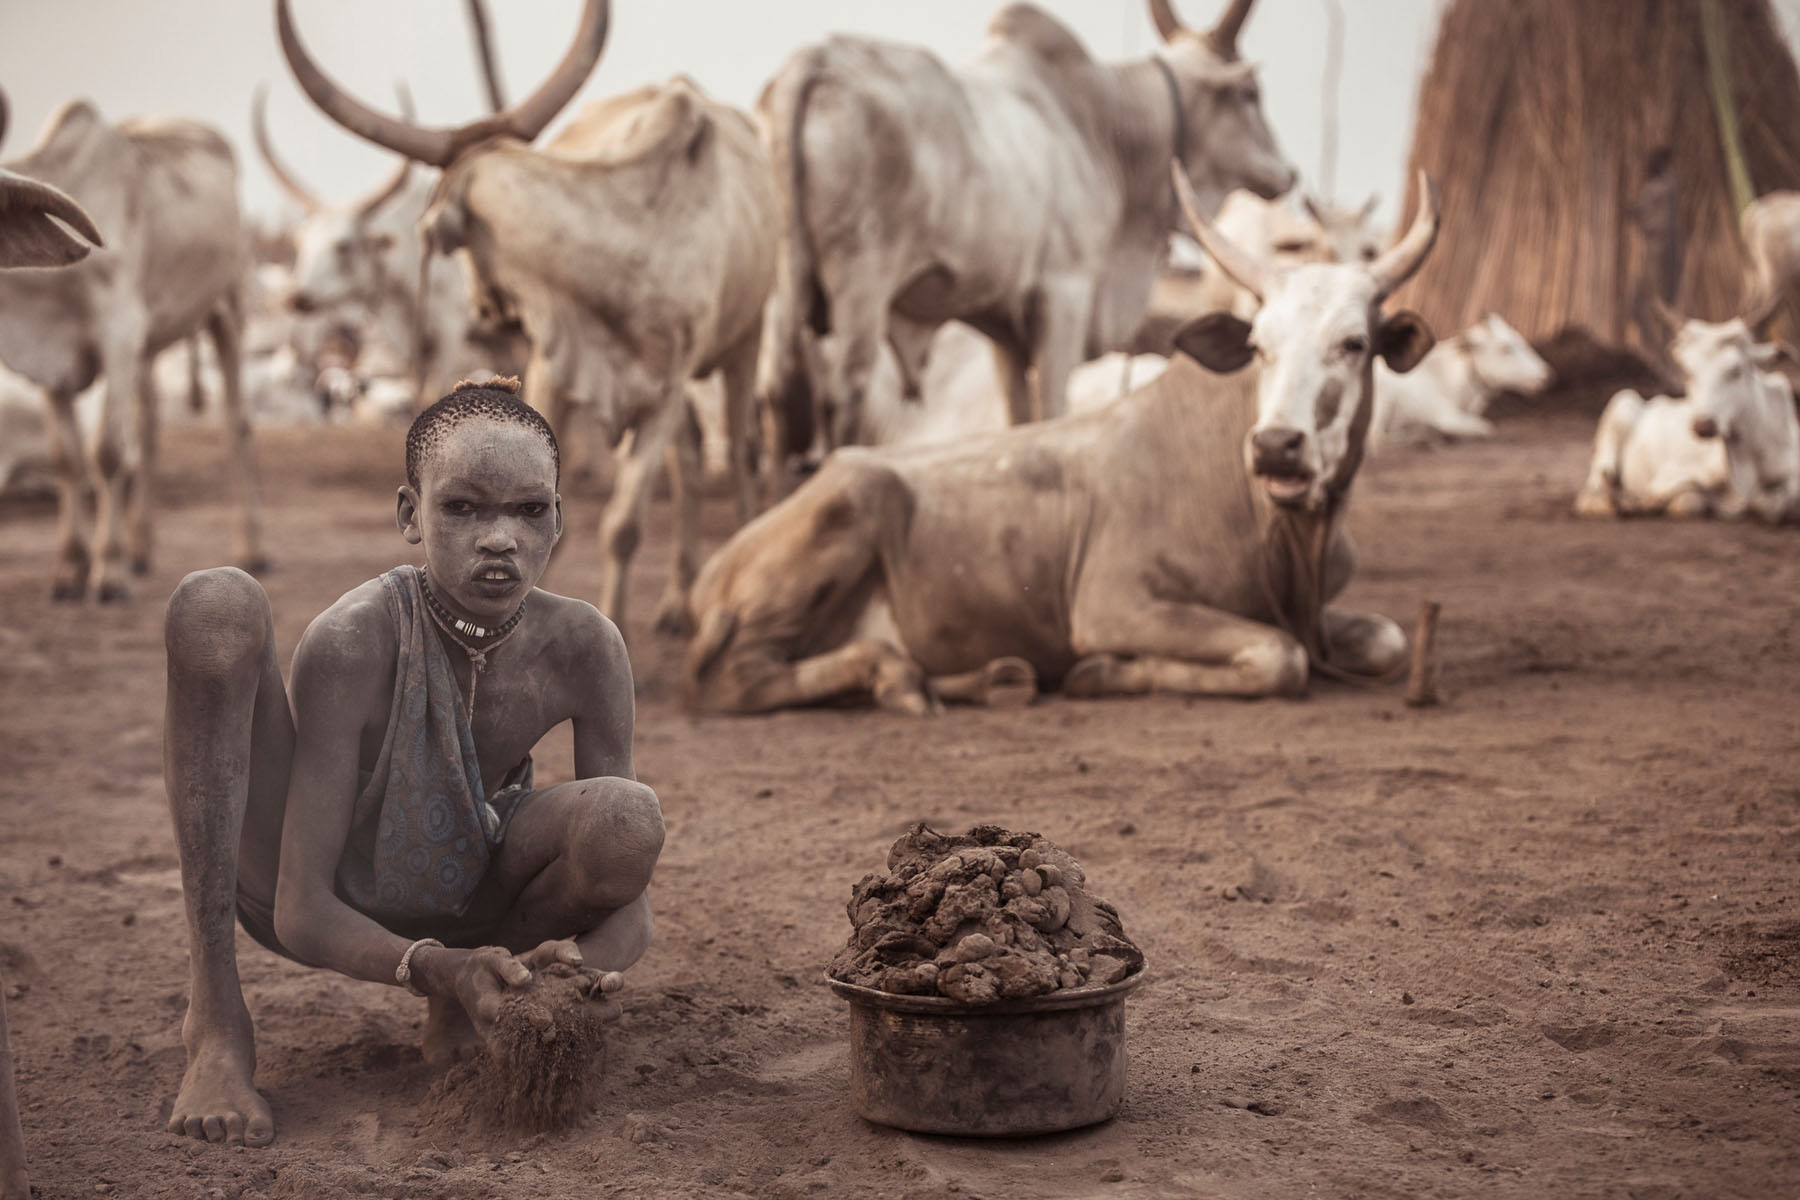 A Mundari boy collects dung for burning – the ash is used, amongst other things, to protect themselves and their prized cattle from insects © Joe Buergi